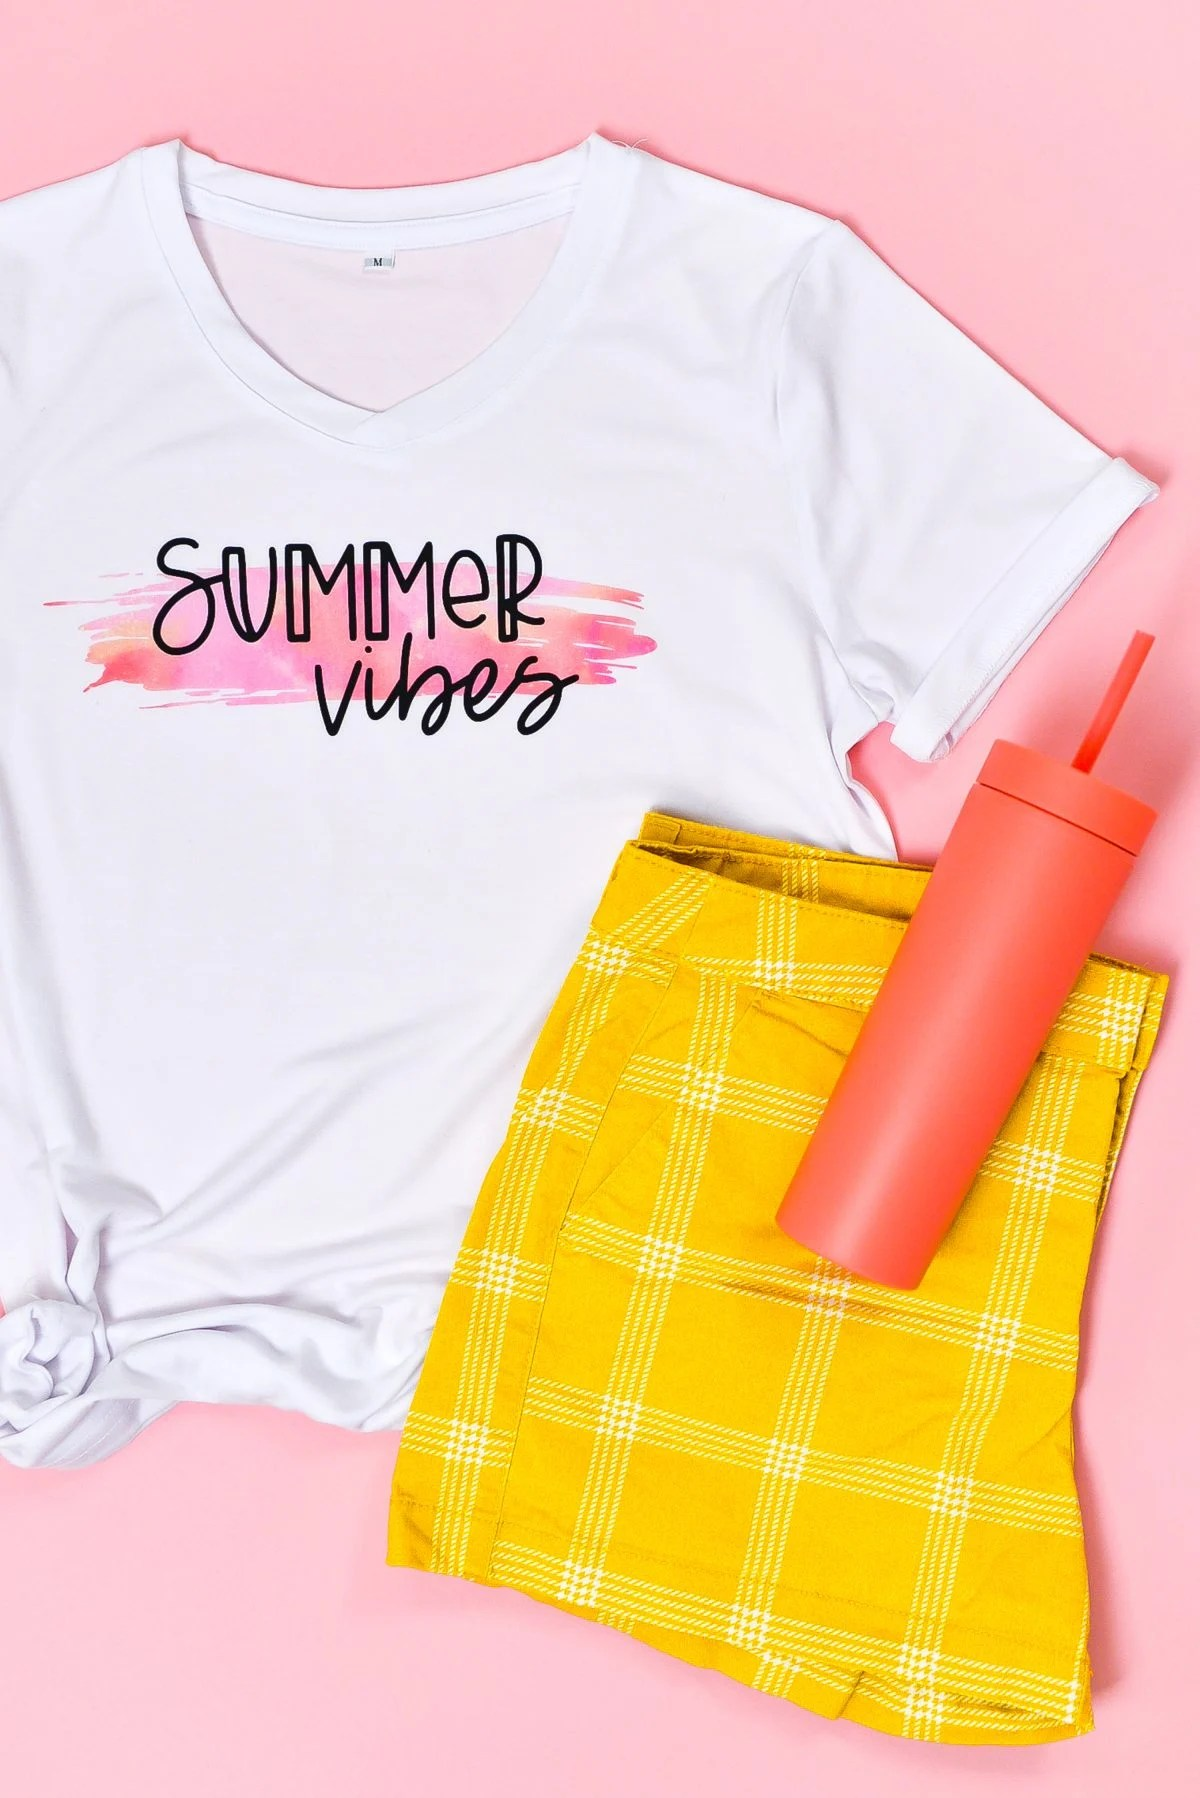 Final Summer Vibes shirt staged with flip flops, water bottle, and shorts on pink background